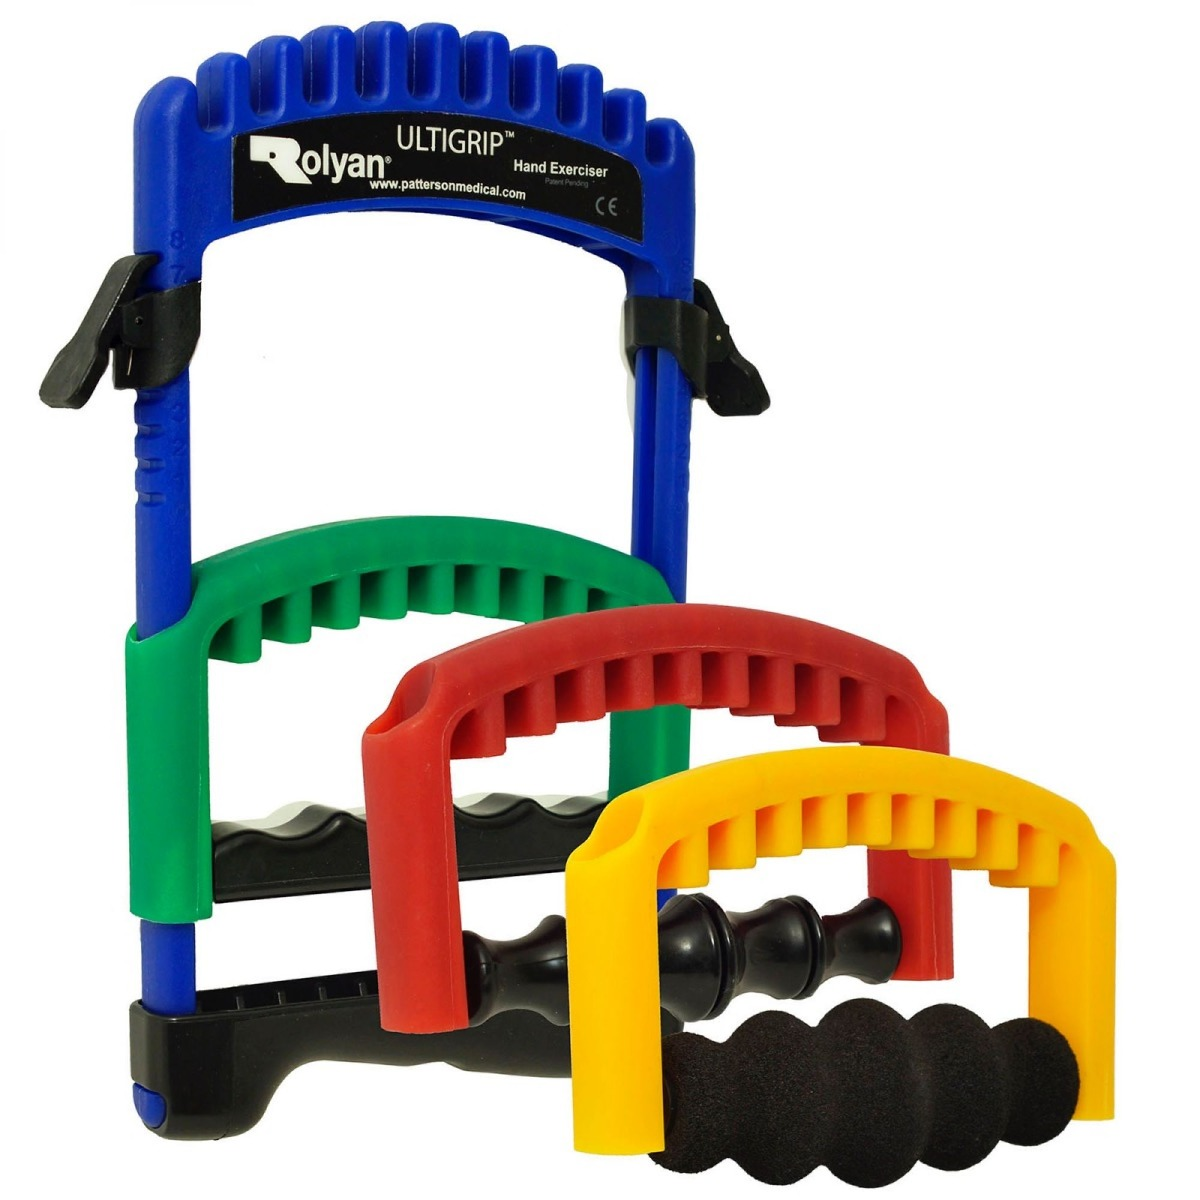 Rolyan Ultigrip Hand Exercisers, Frame With Set of 3 Inserts